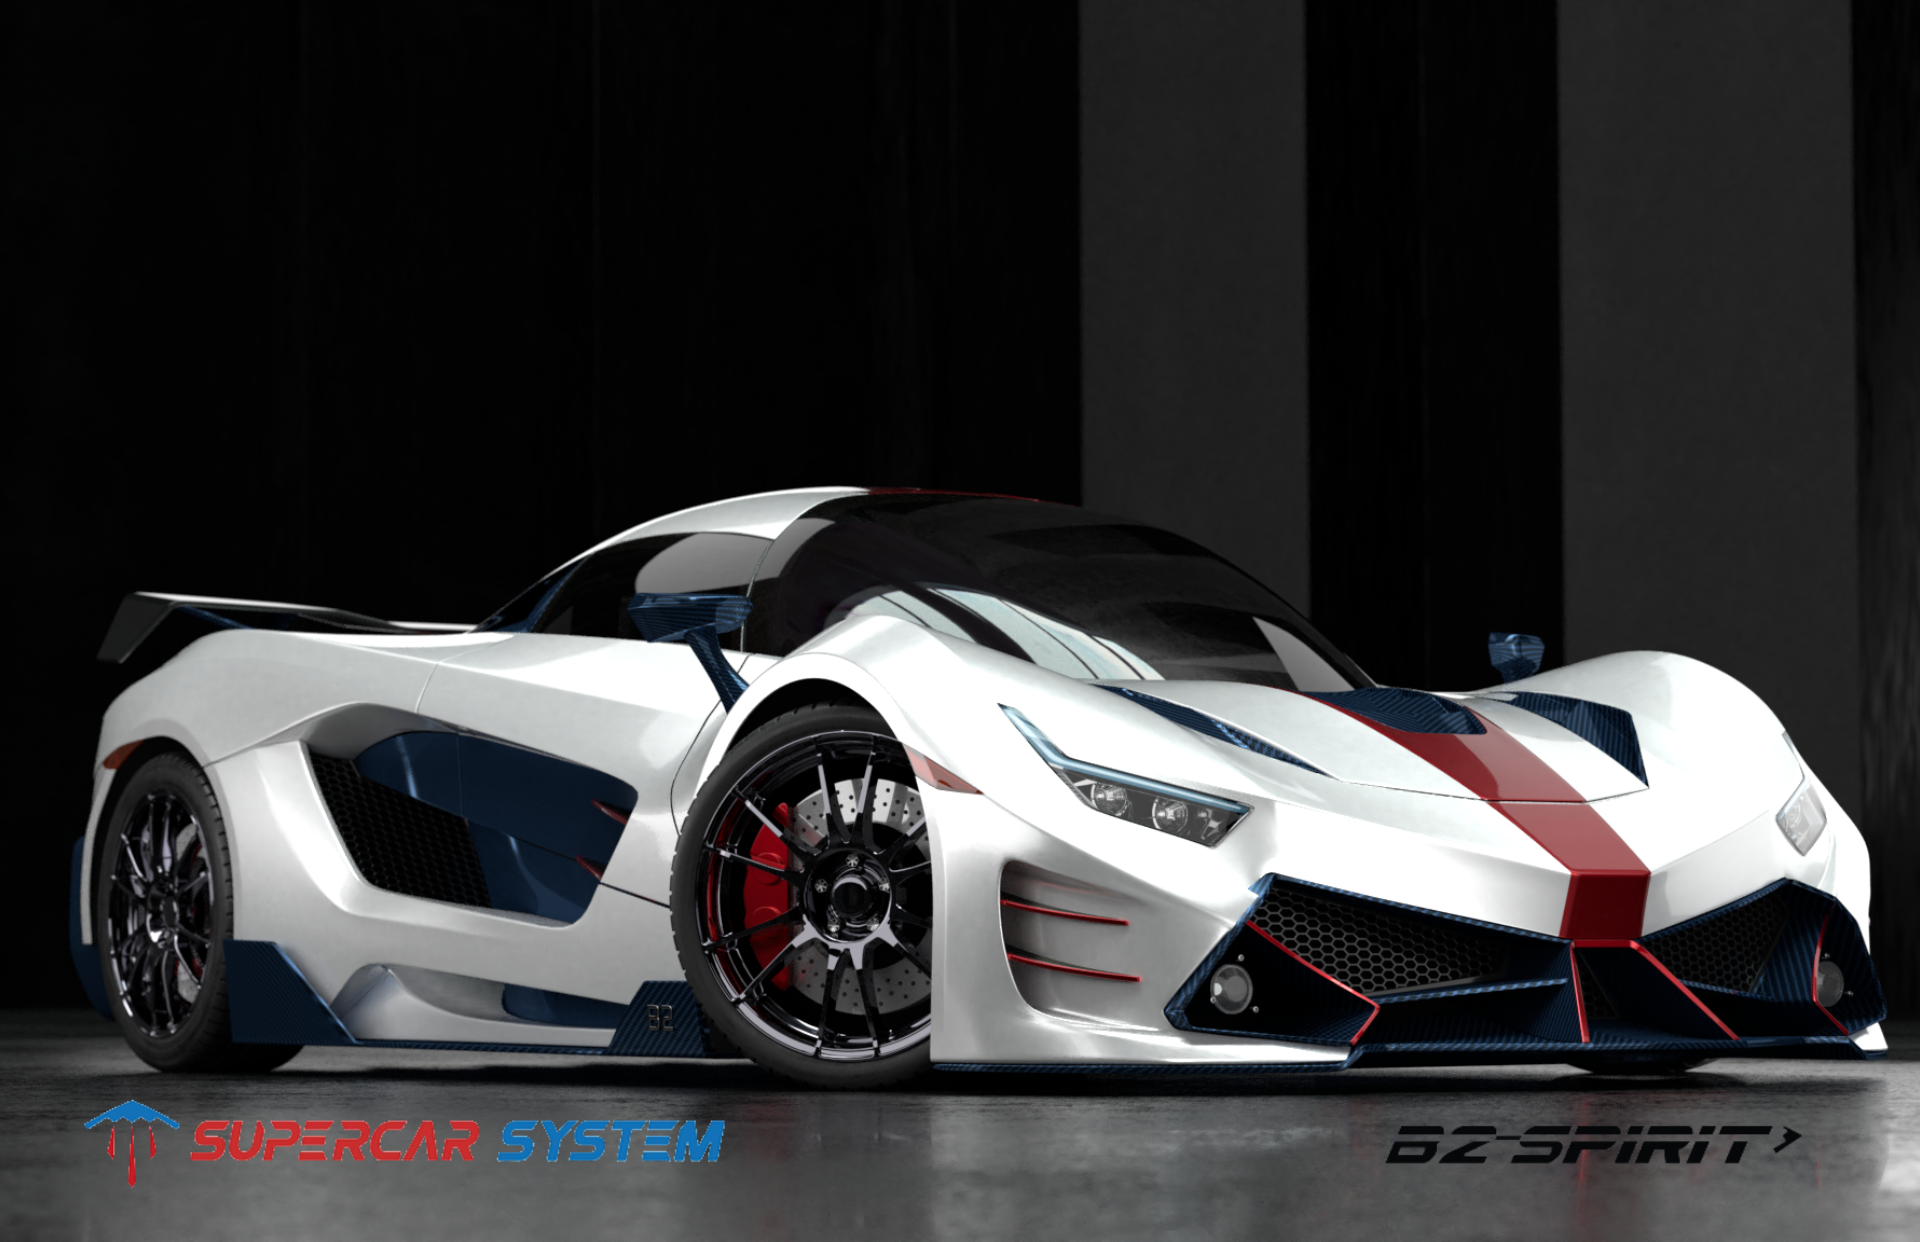 B2 Spirit 003 Super Cars System Sports Car